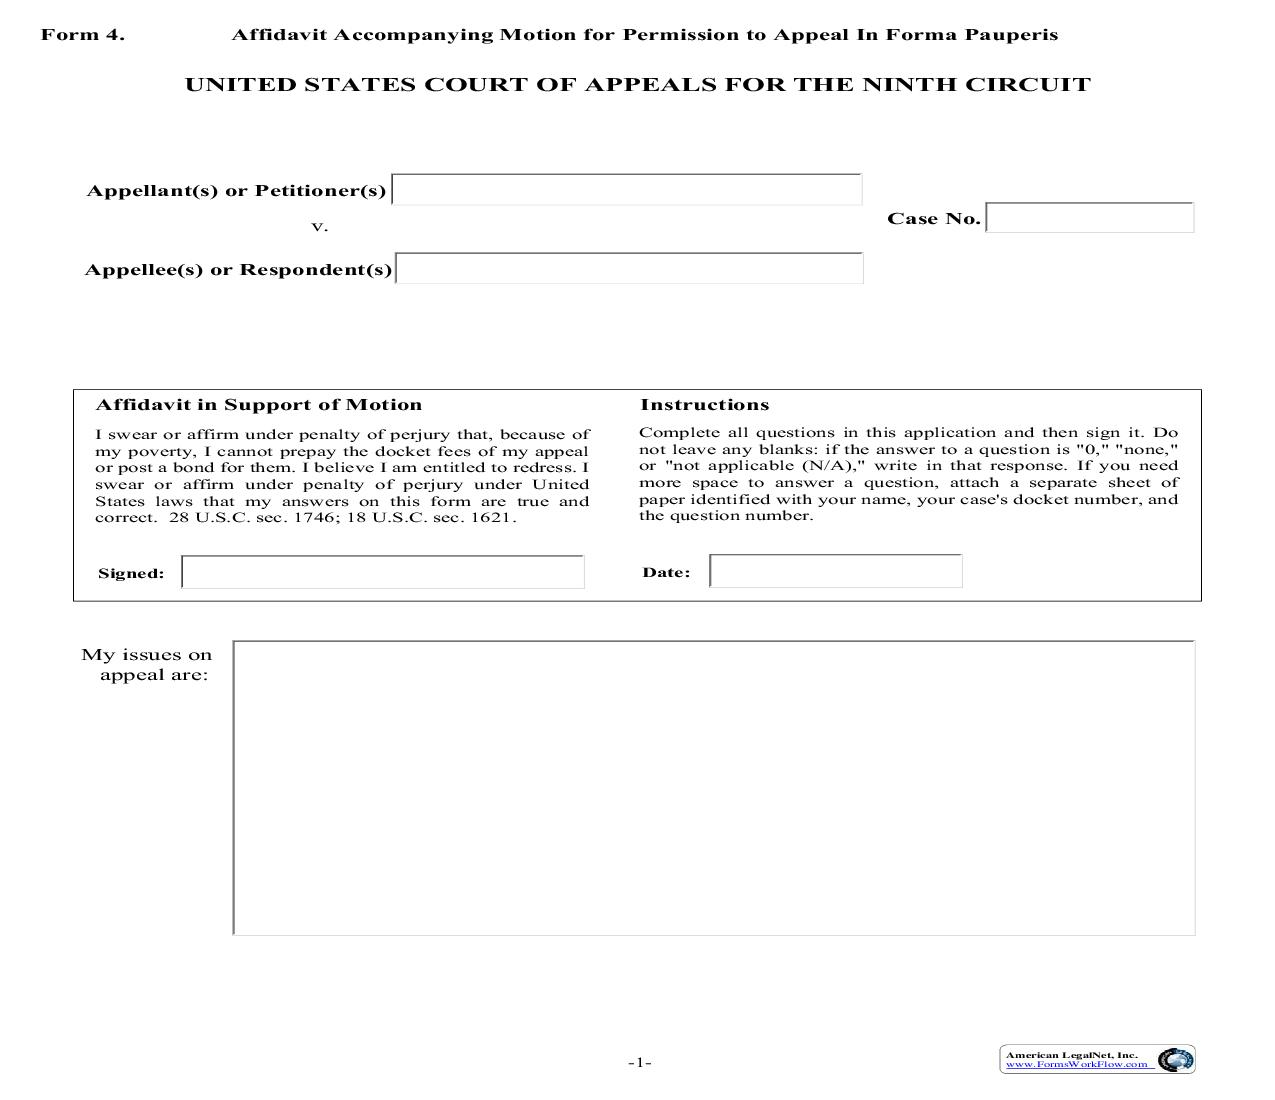 Form 4 Affidavit Accompanying Motion For Permission To Appeal In Forma Pauperis {4} | Pdf Fpdf Doc Docx | Official Federal Forms